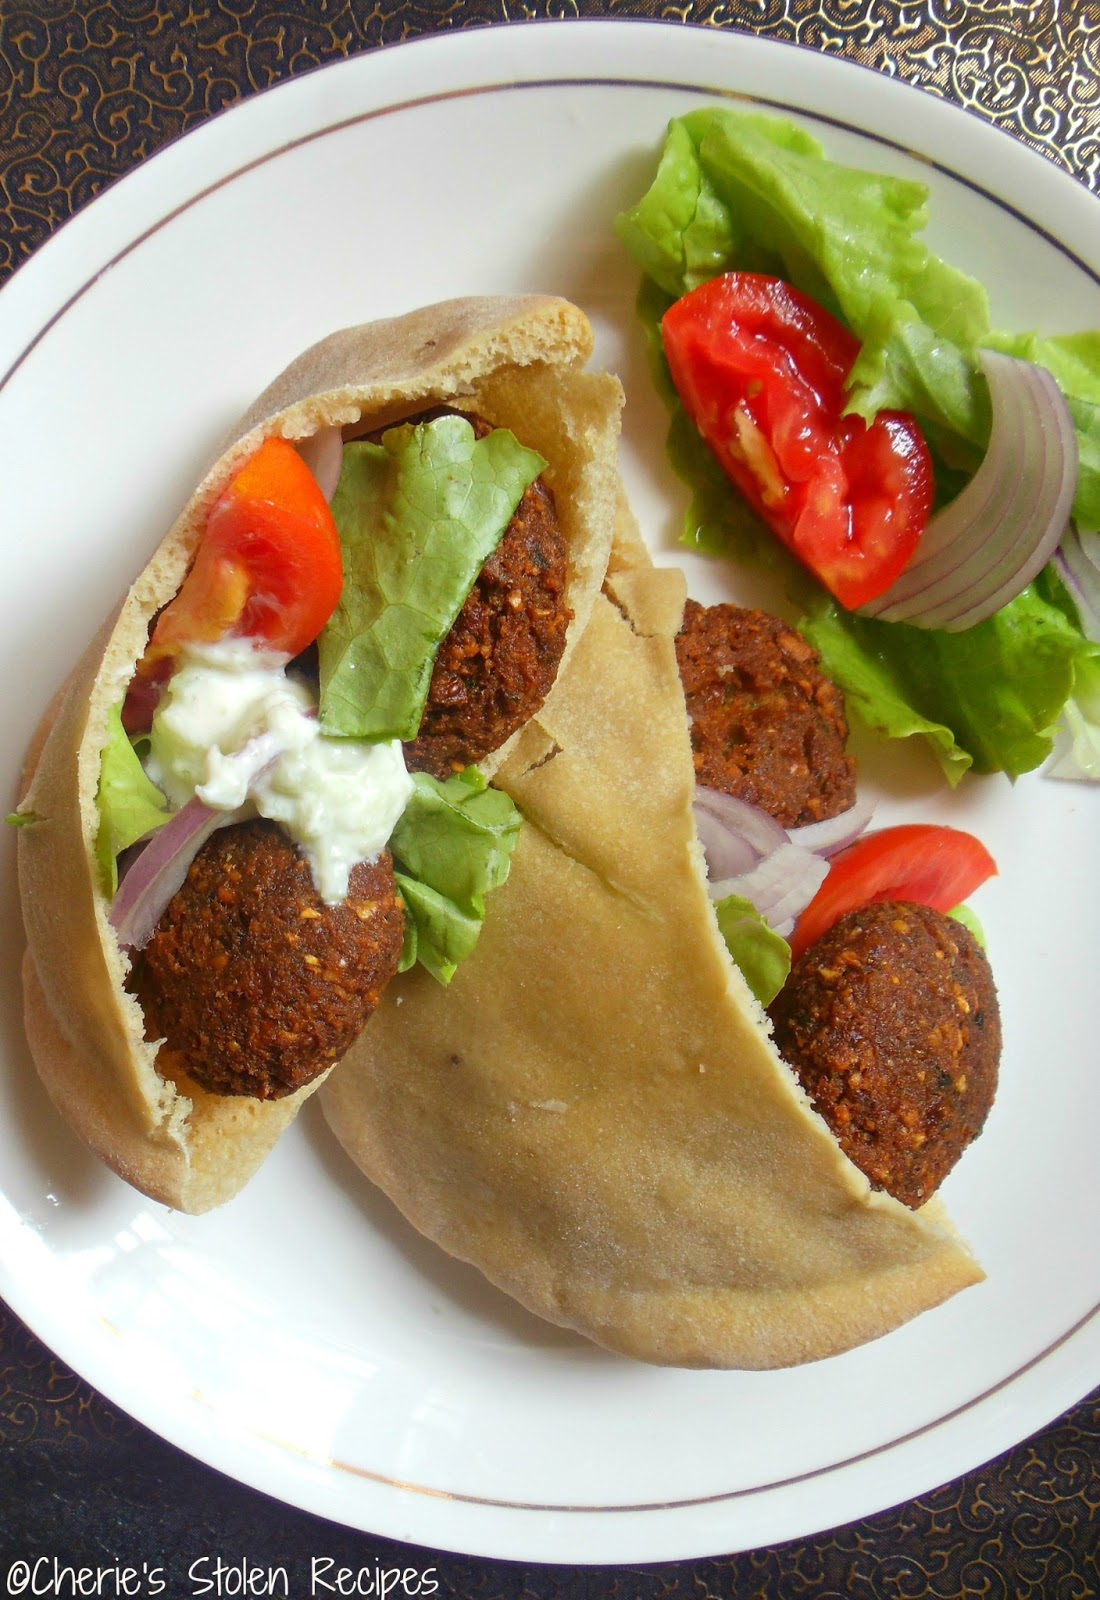 Cherie's Stolen Recipes: Falafel with Cucumber and Mint dip